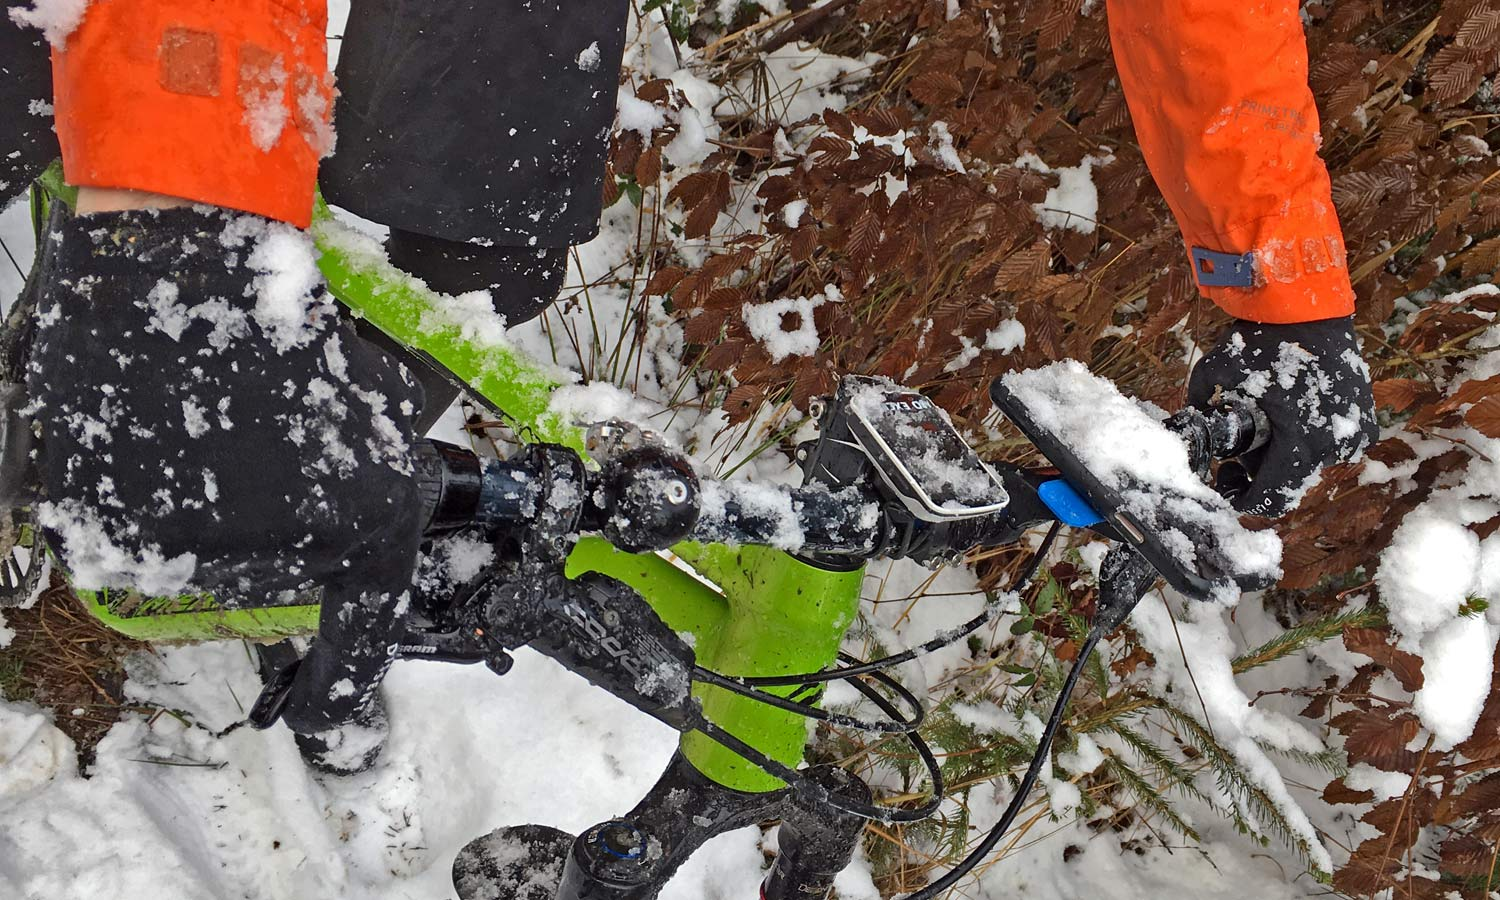 Dissent 133 Ultimate Glove Cycling Pack for cold and/or wet winter riding